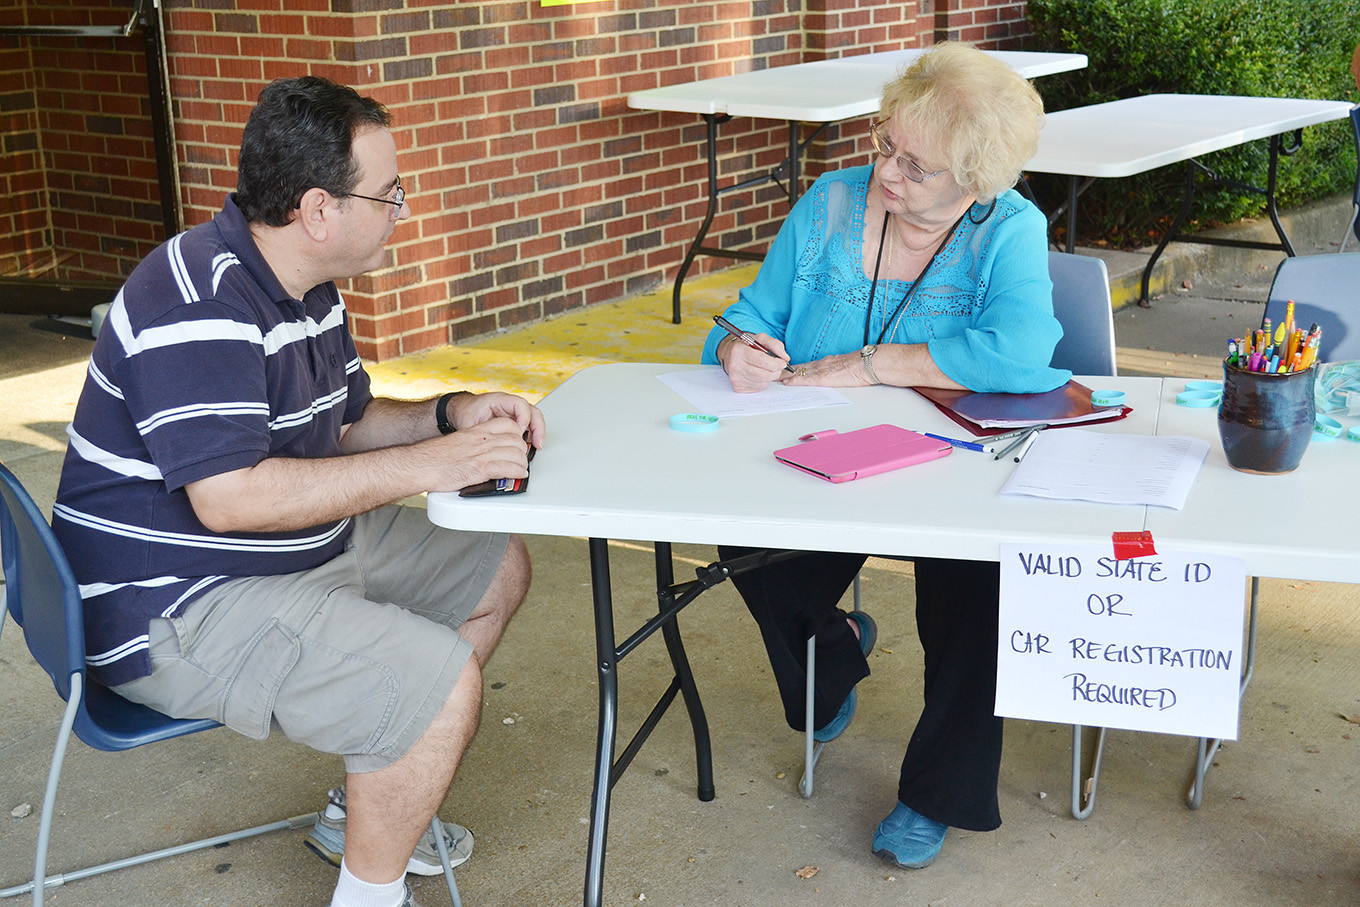 Stephen Caldwell, left, an evacuee from Naples, Fla., gives registration information Sunday night to Linda McCauley outside the shelter set up at First Baptist Church of Jasper.